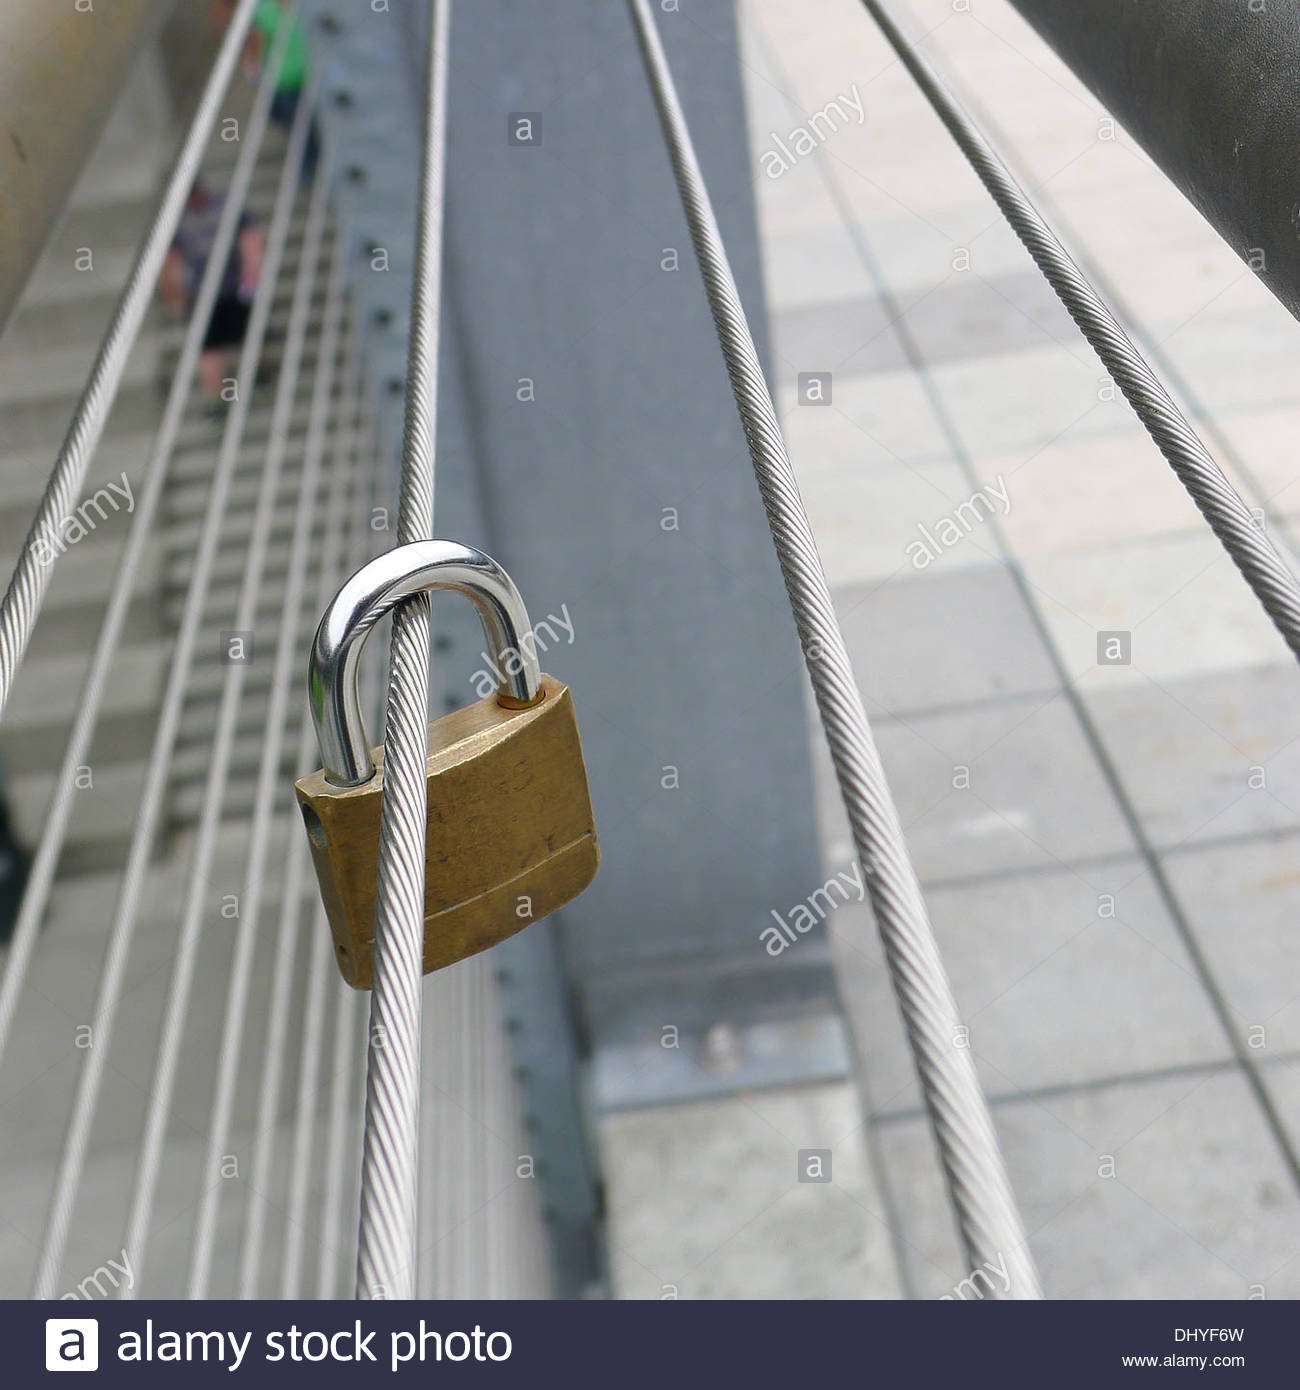 Secure Insecurity Stock Photo